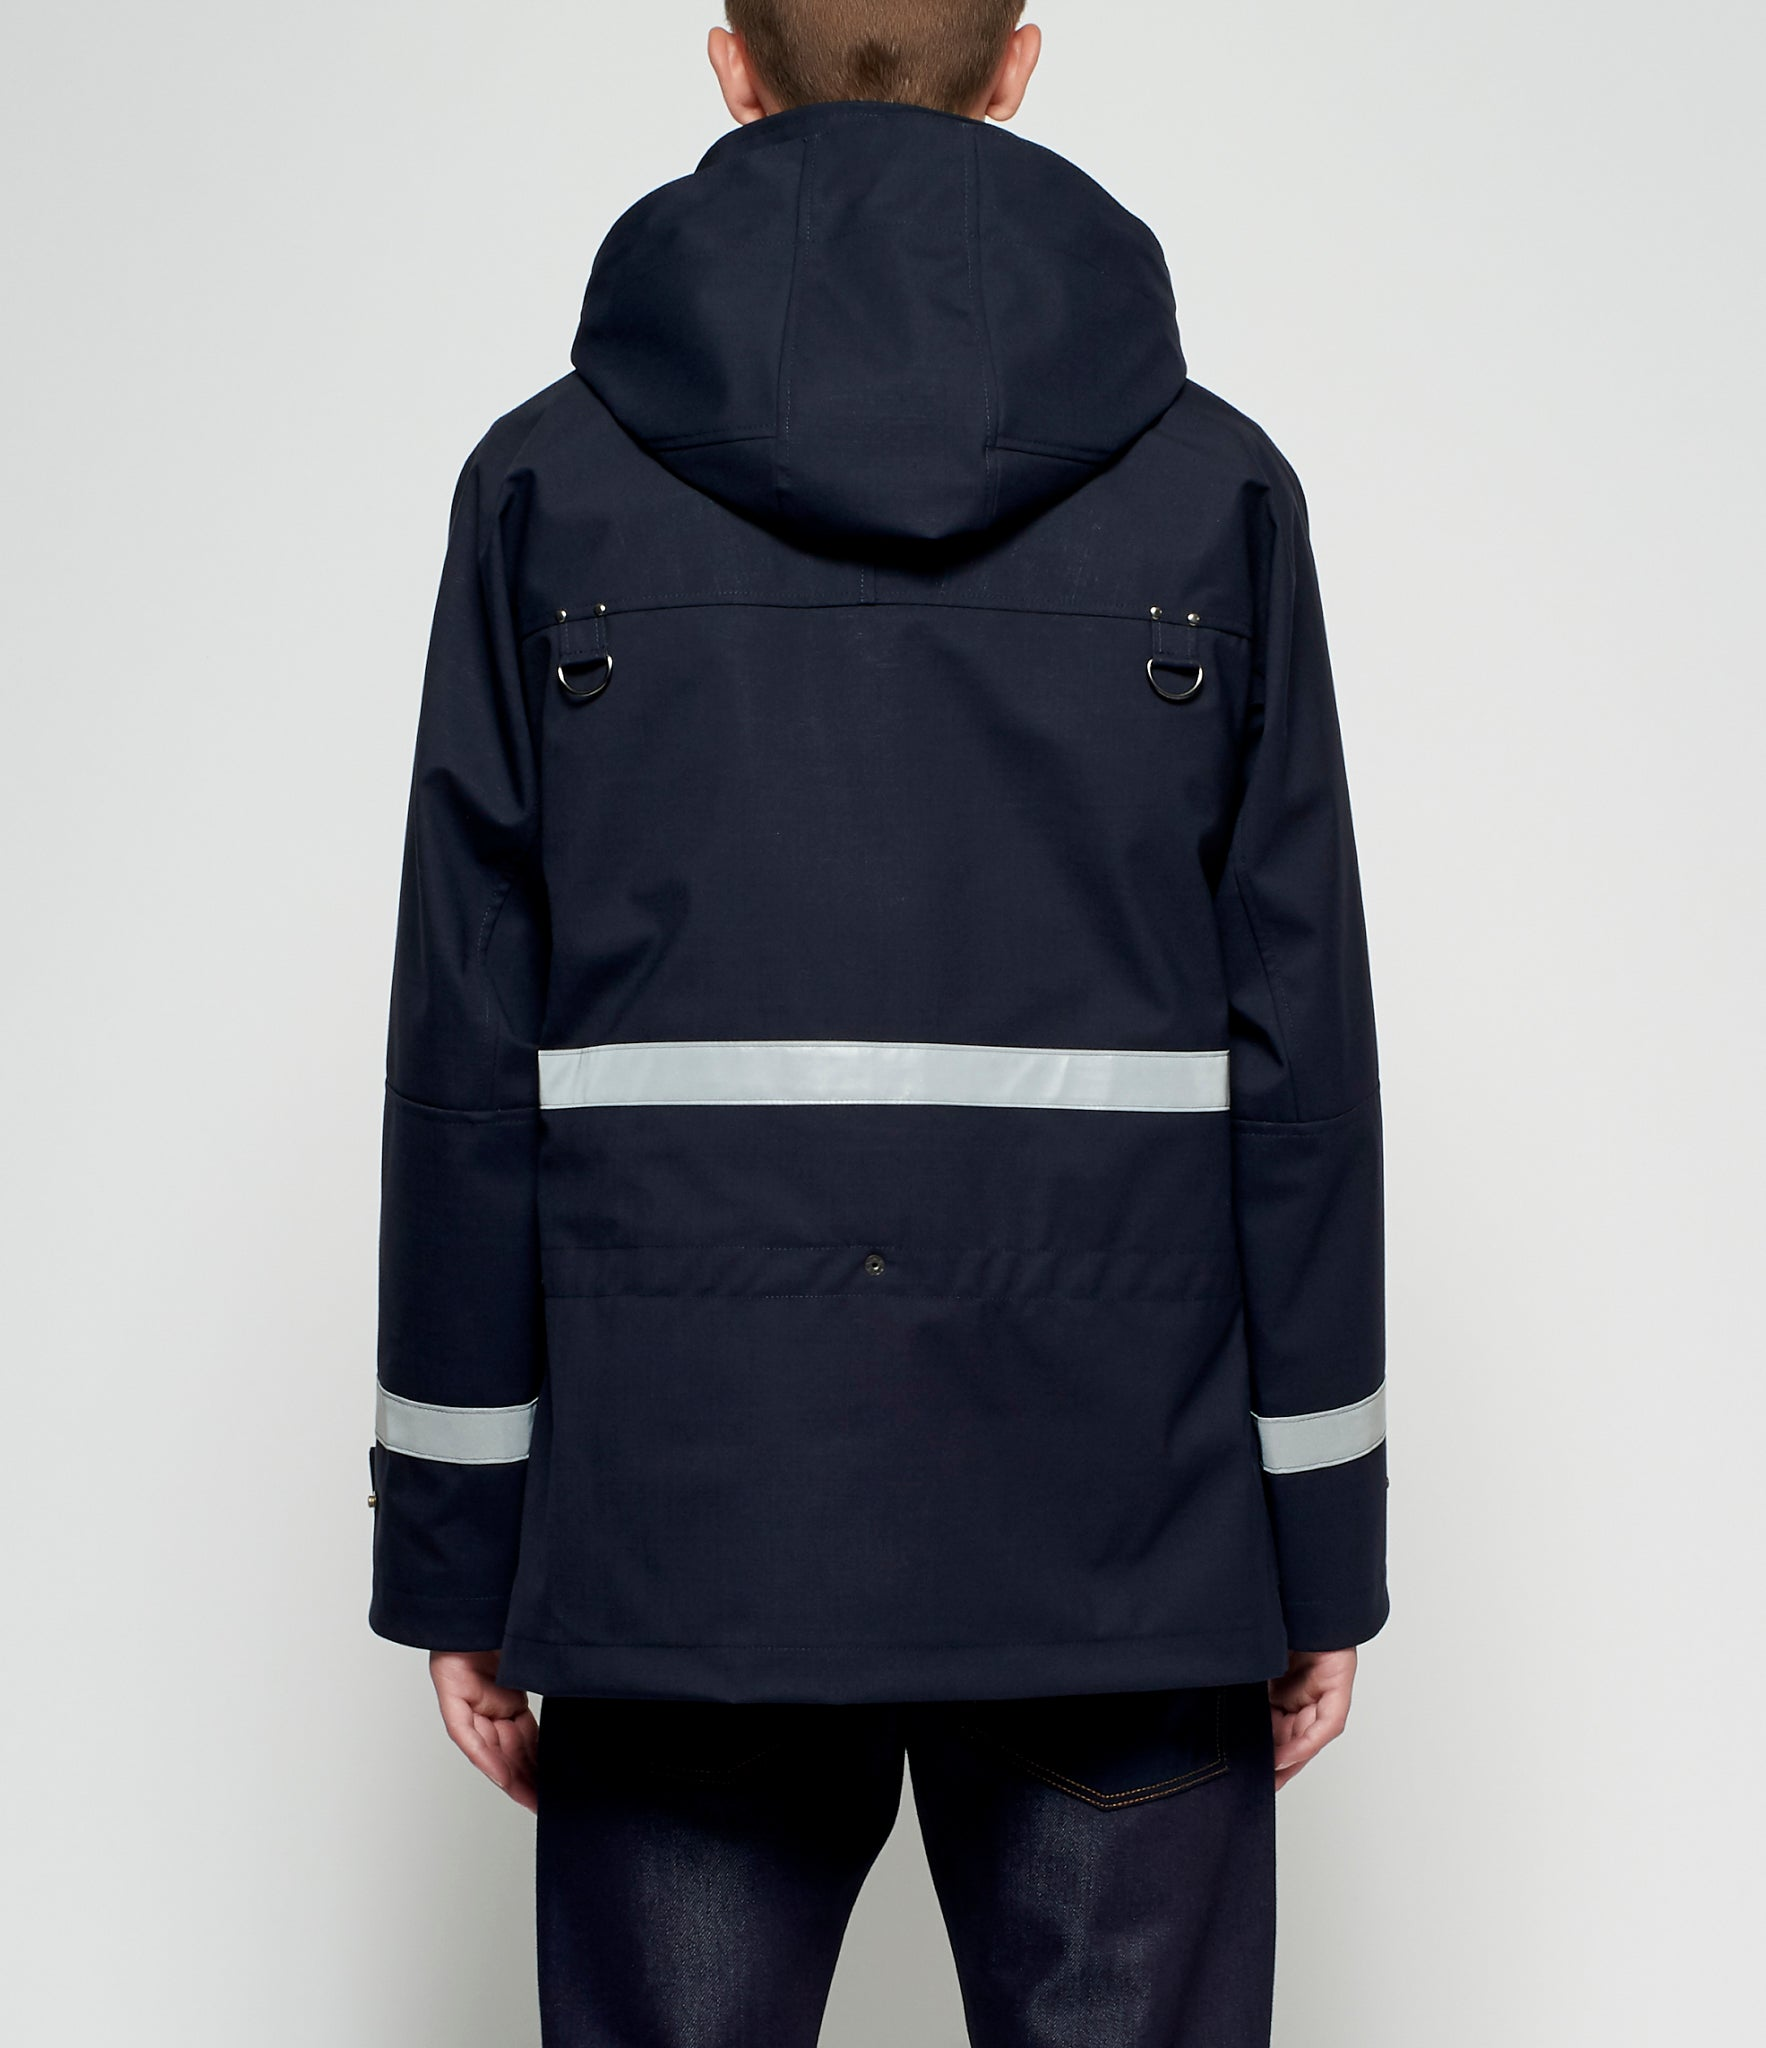 Junya Watanabe Laminated Polyester Wool Fire Fighter Bag Jacket